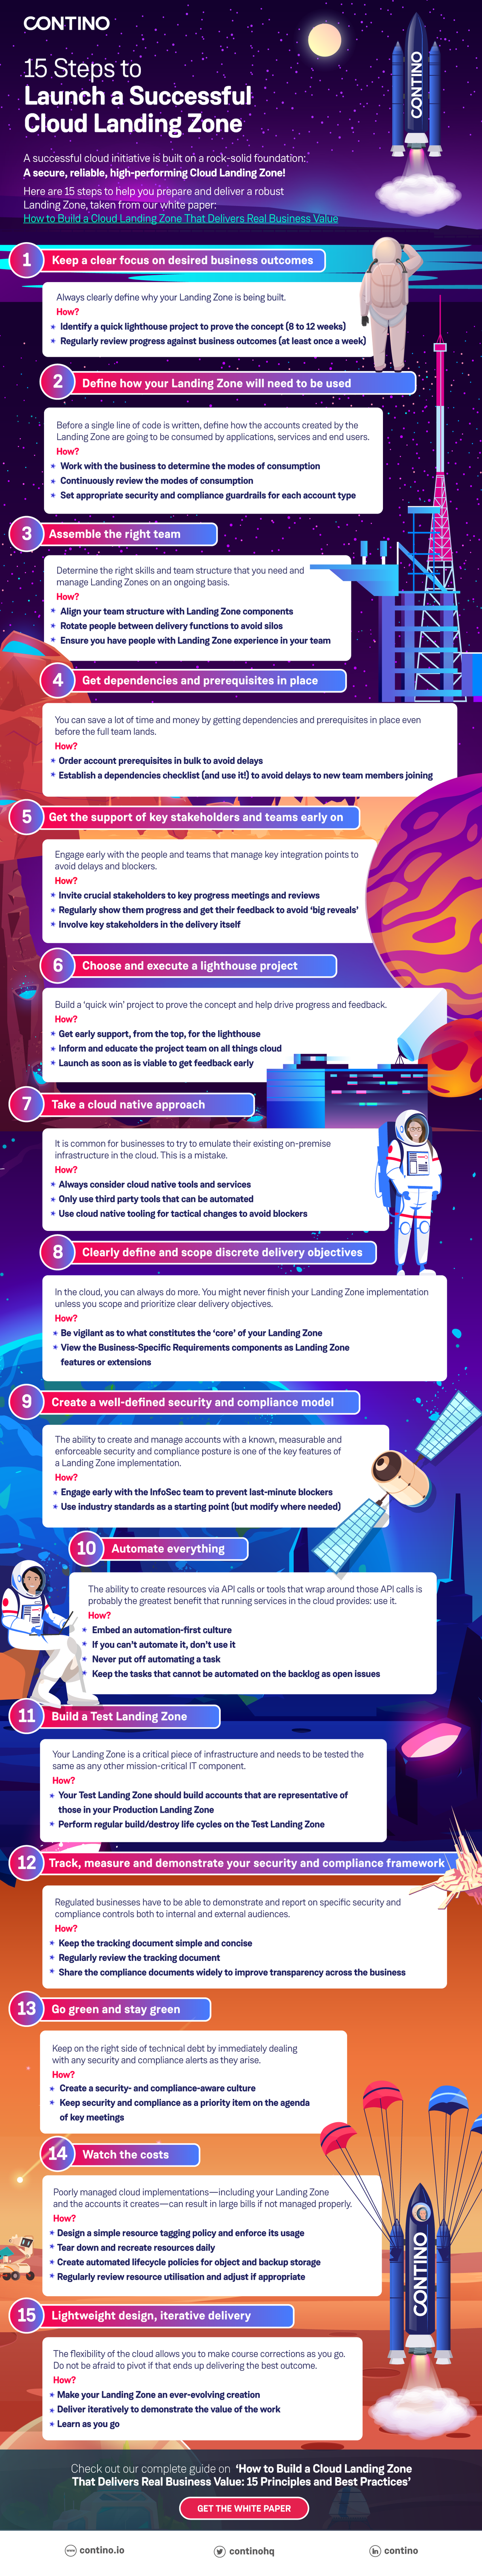 How to Launch a Cloud Landing Zone [Infographic]